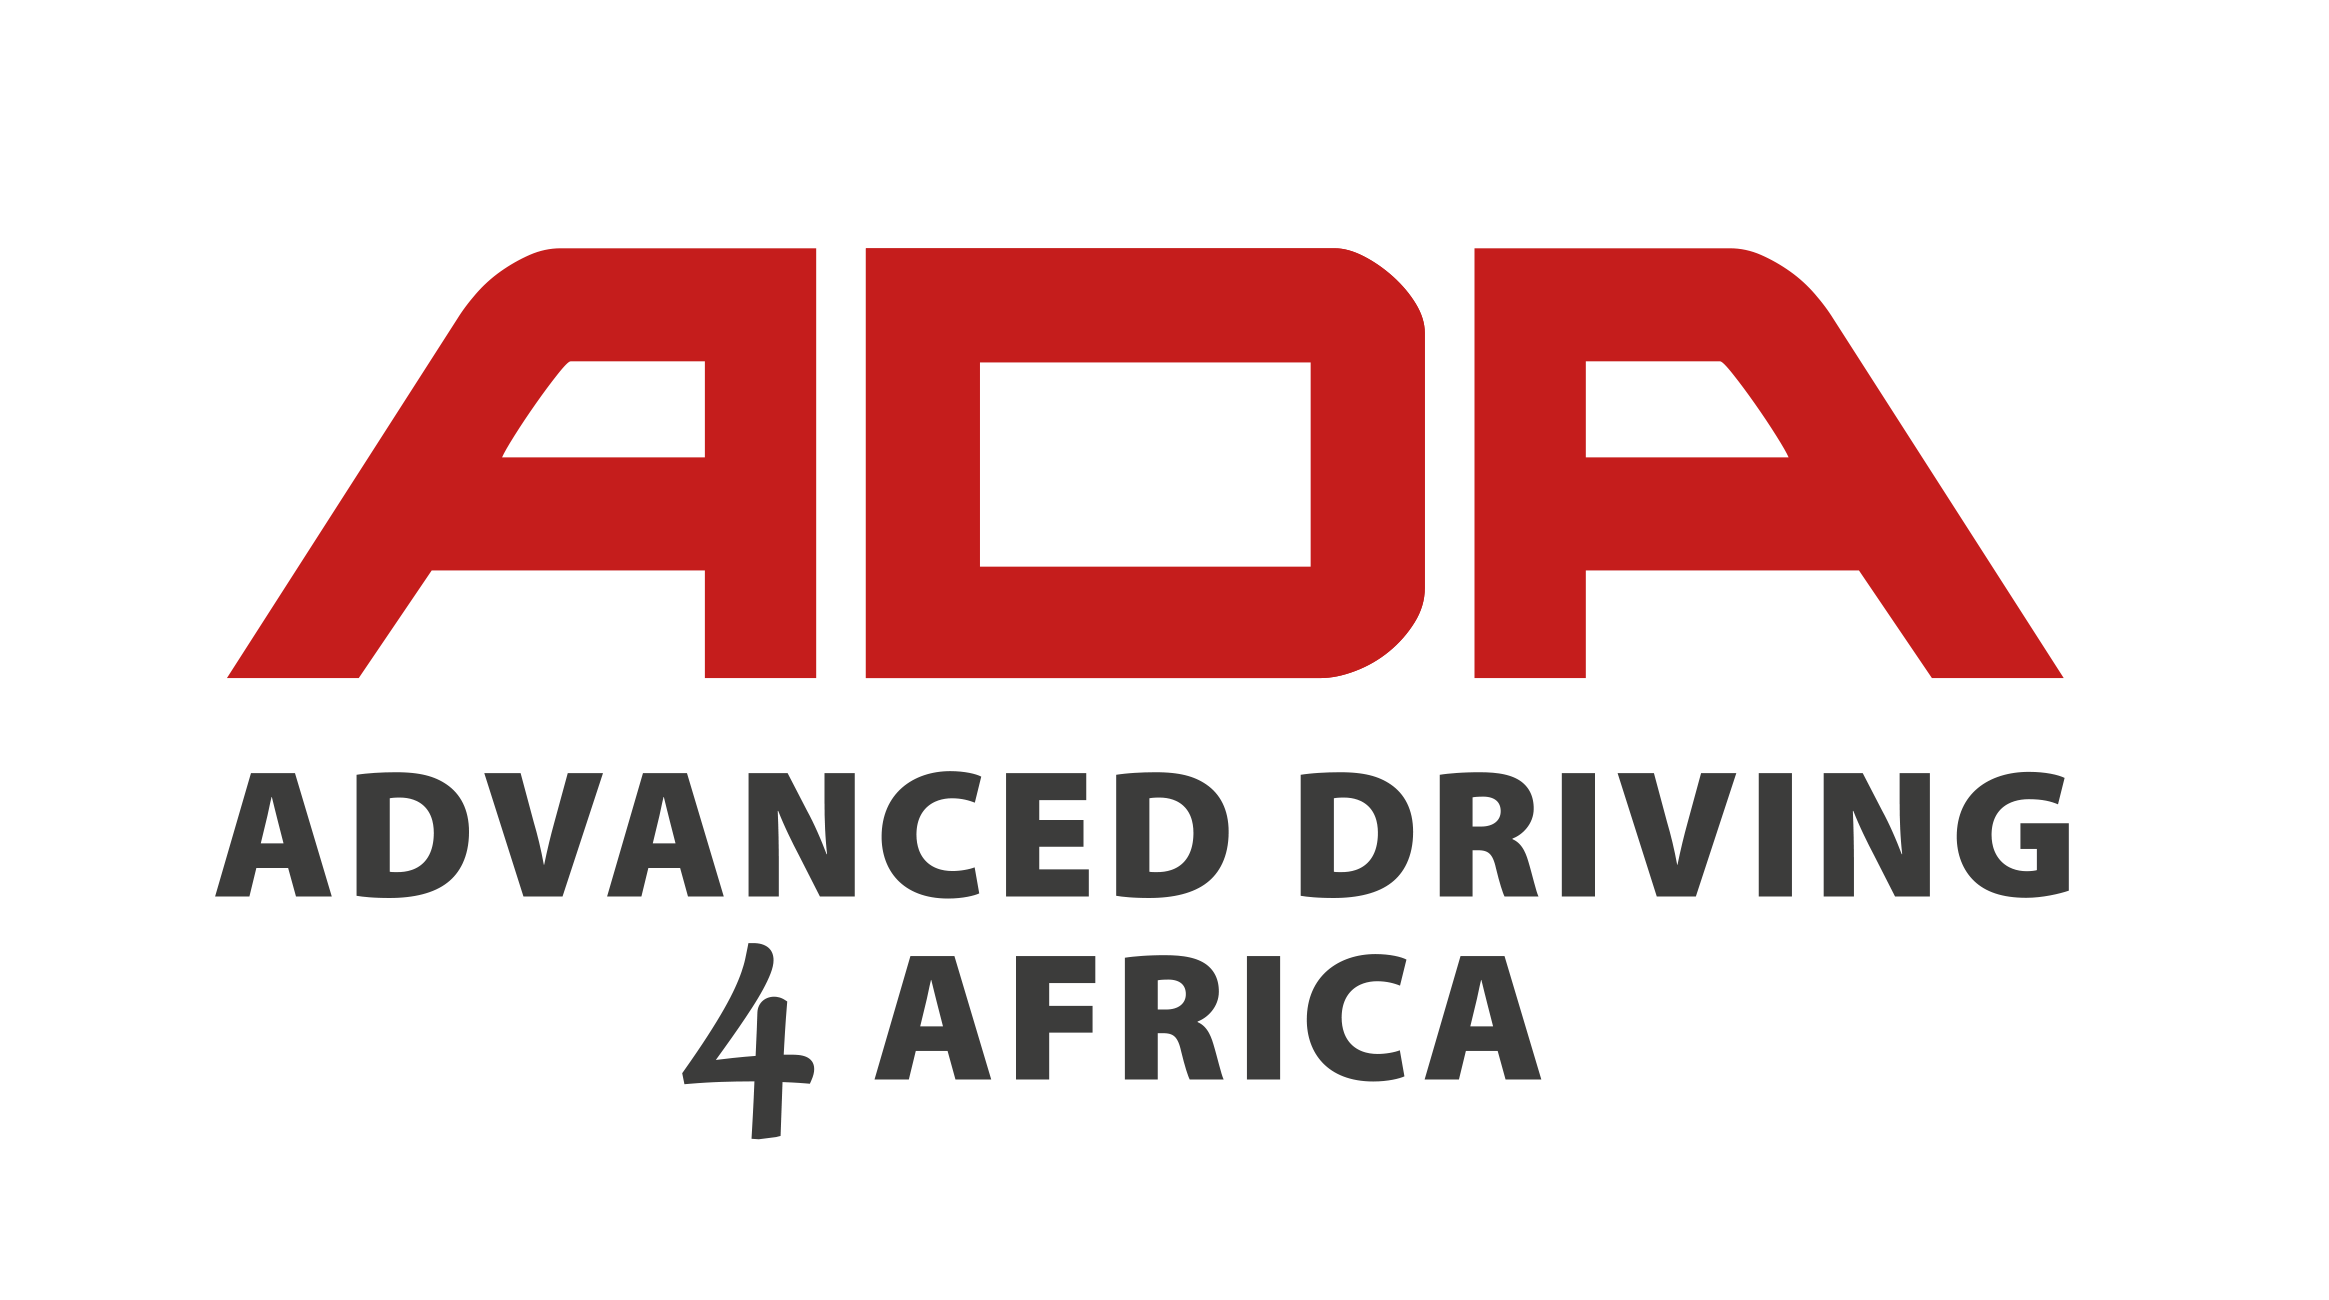 Advanced Driving 4 Africa